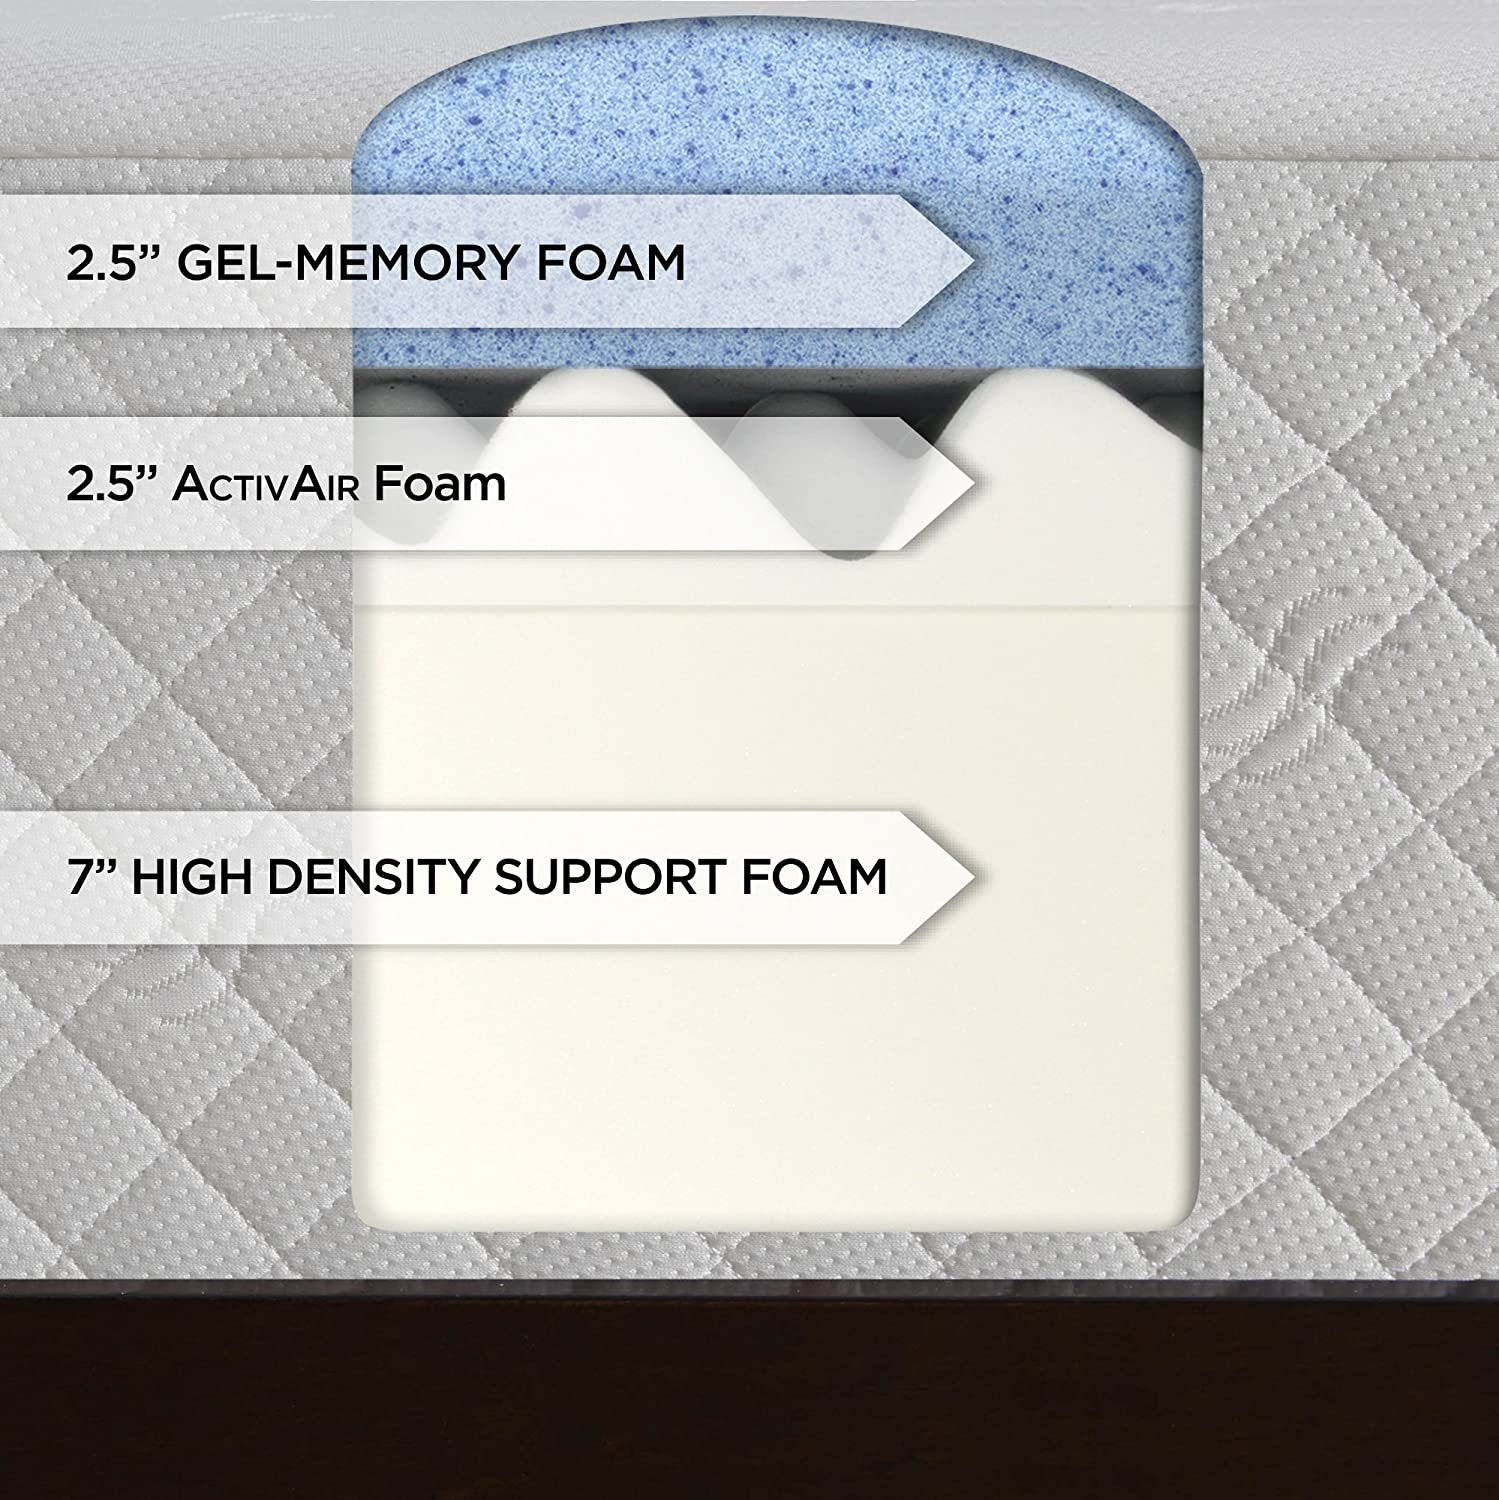 Serta 12Inch Gelmemory Foam Mattress Review